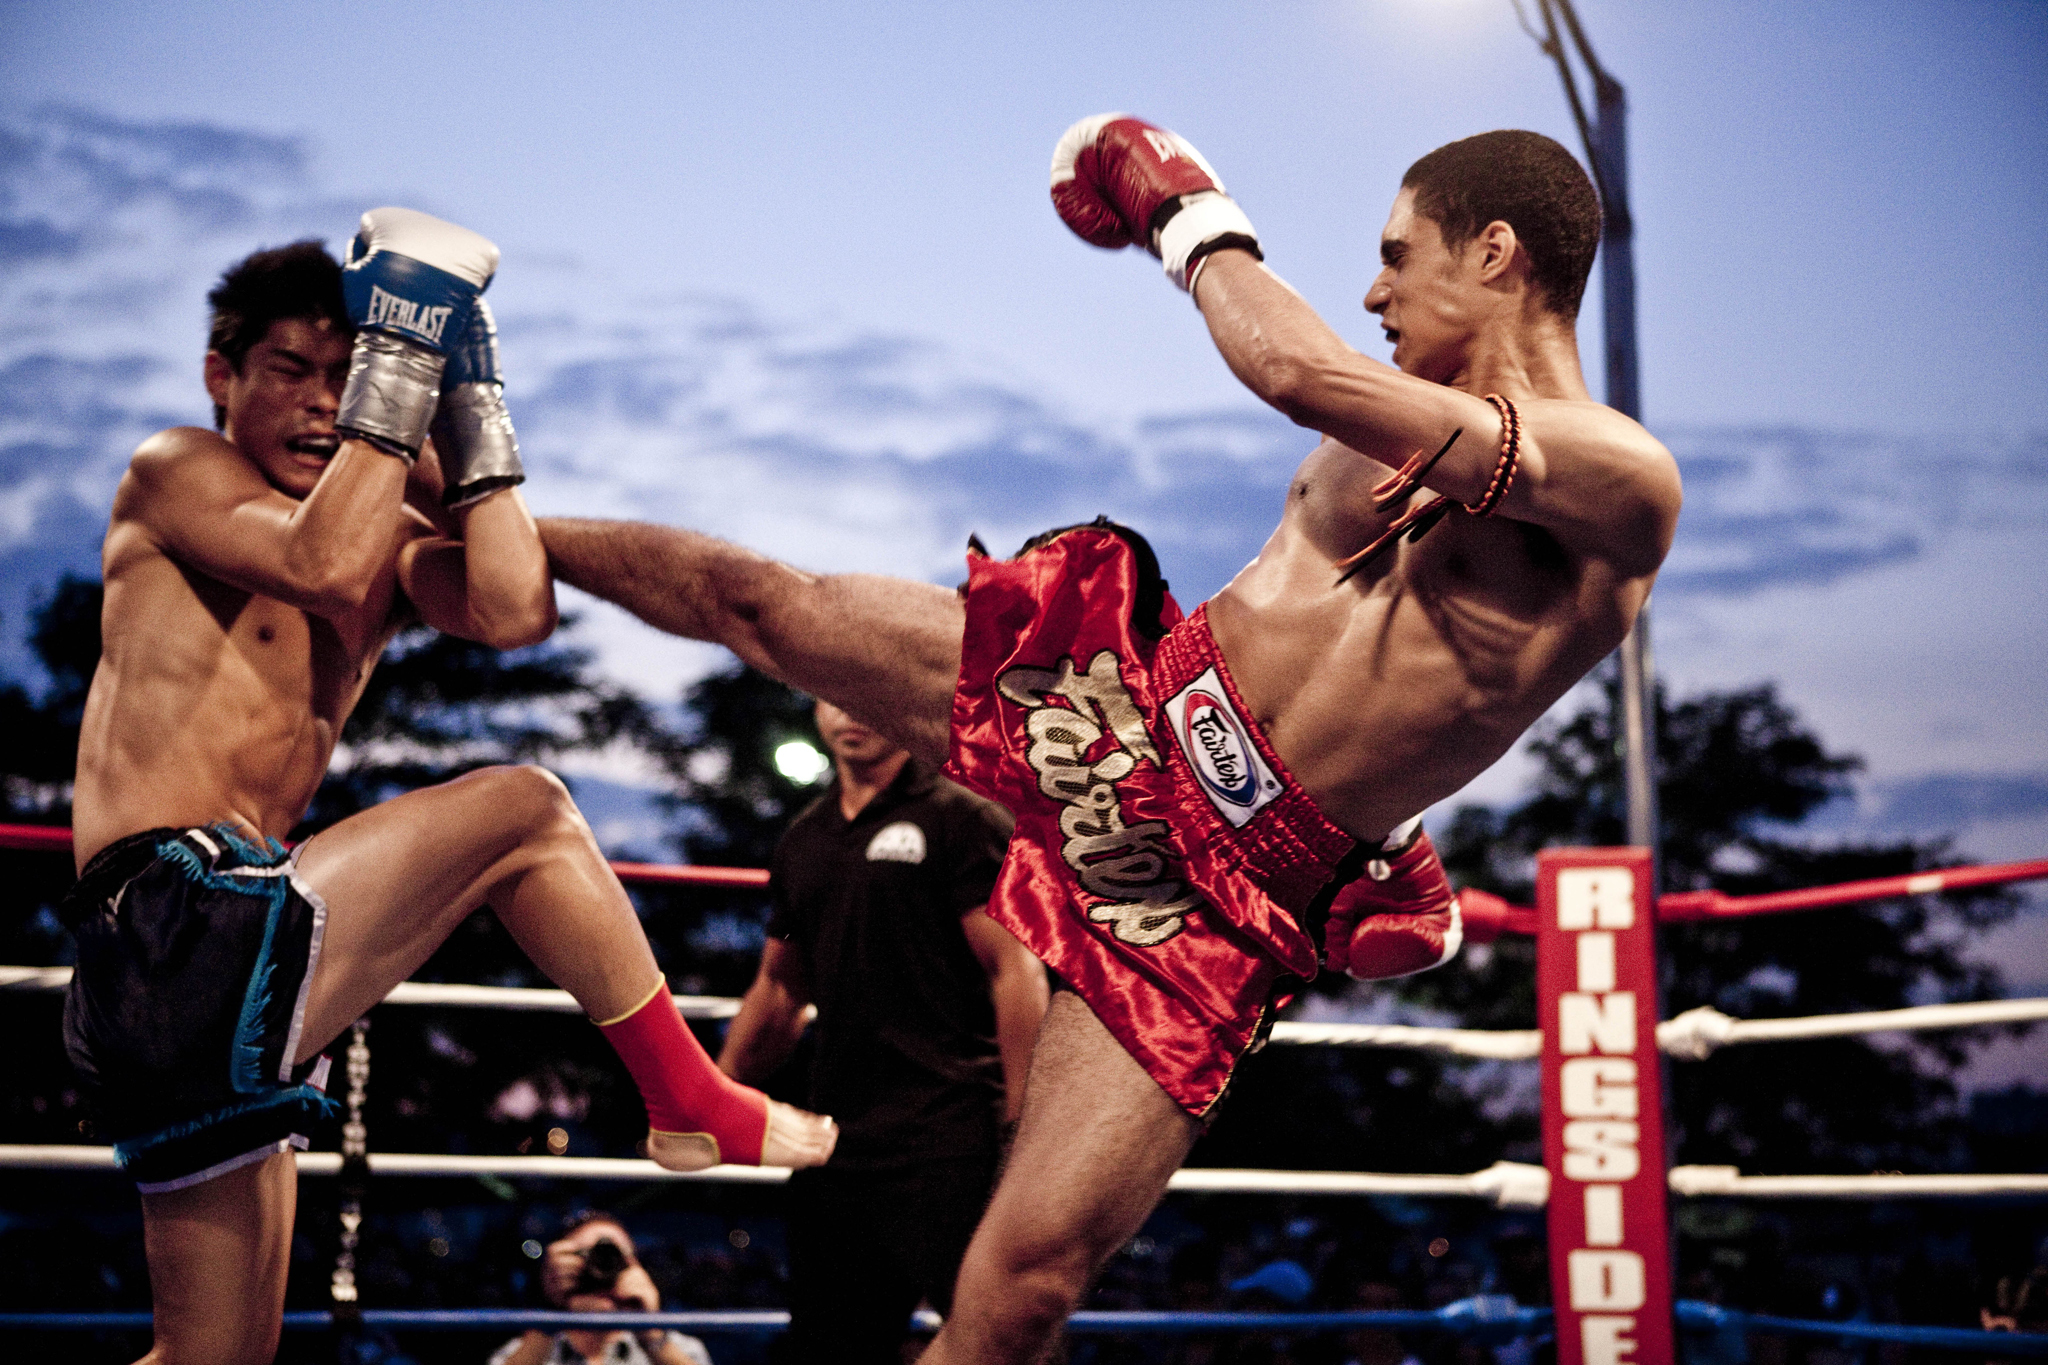 Watch Muay Thai fighters rumble